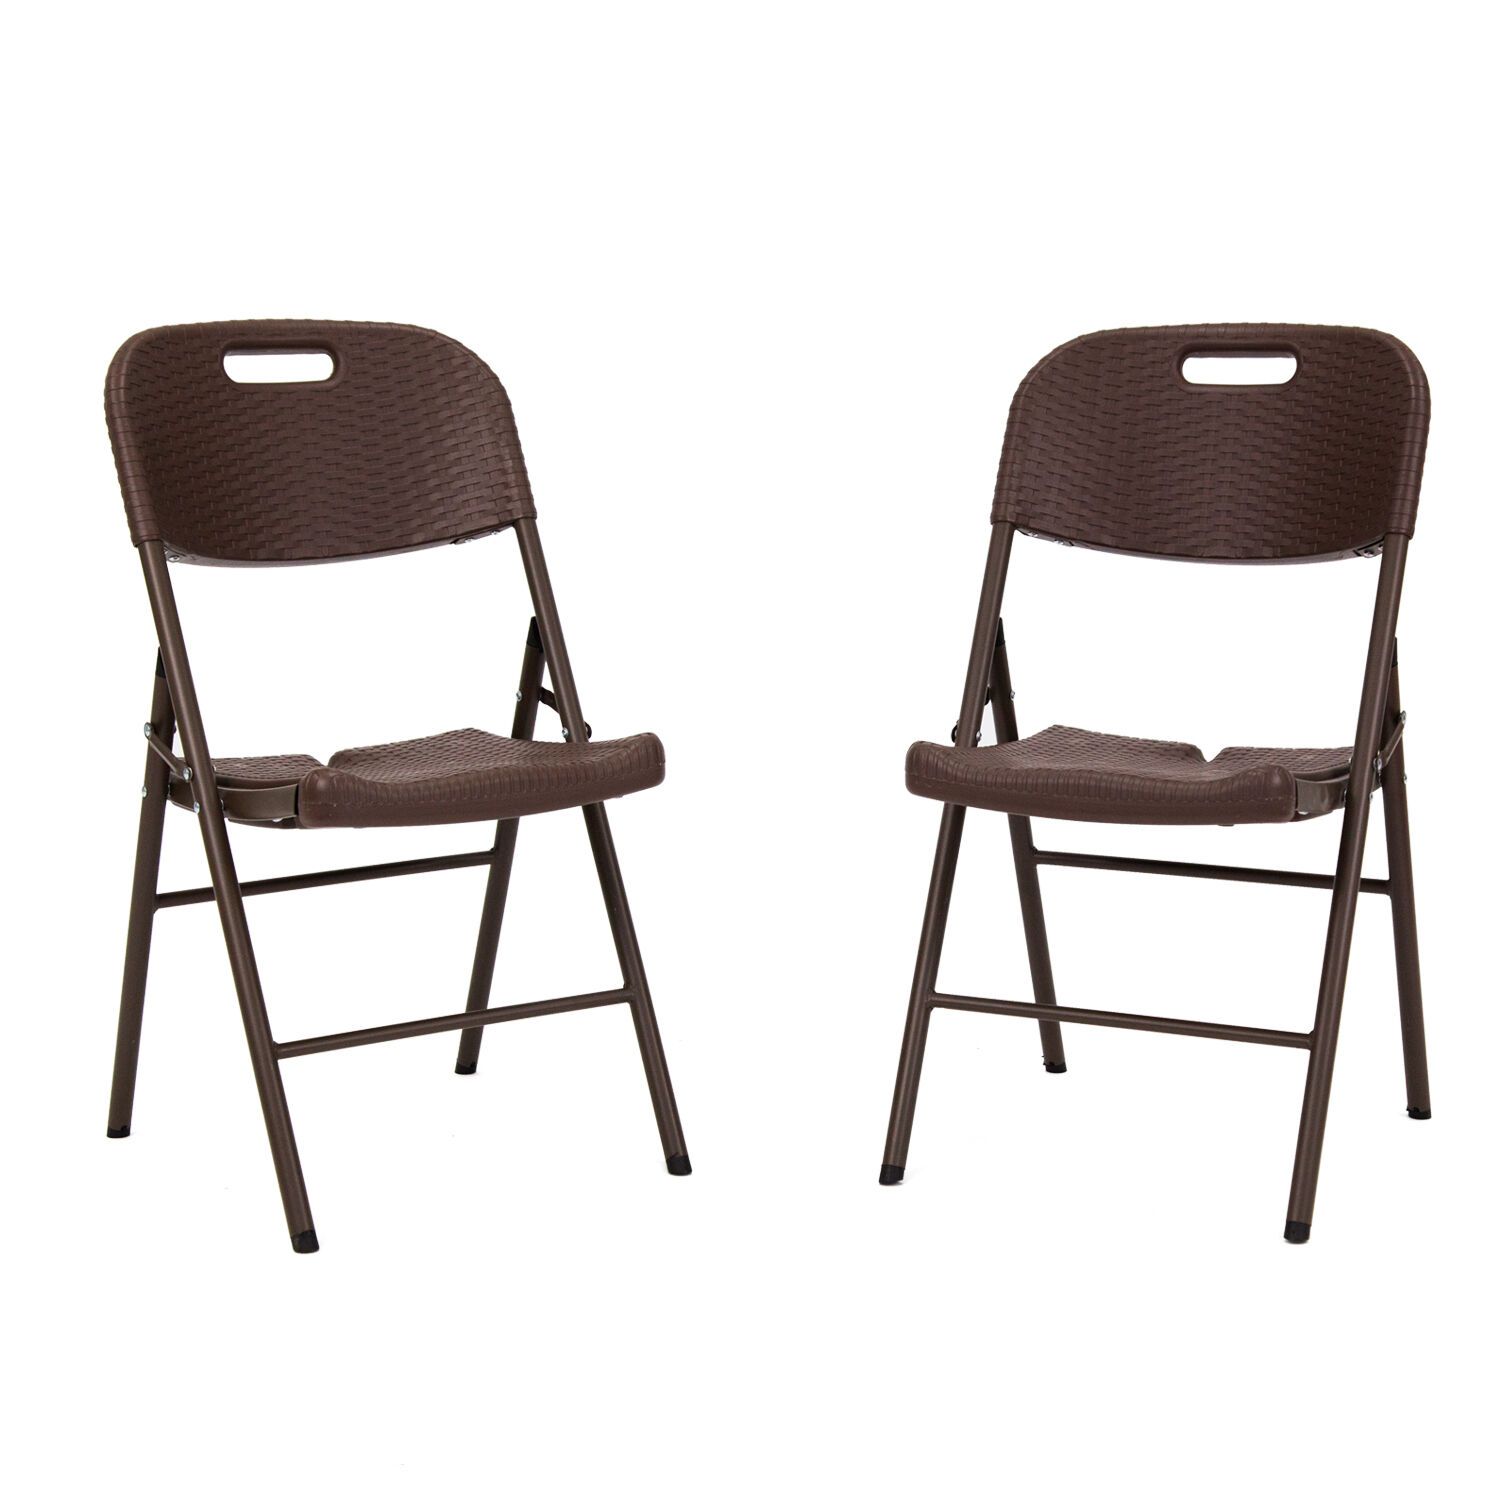 2Pcs Portable Chairs Set Rattan  Design Folding Picnic Chair Party Camping Brown  offering 100%